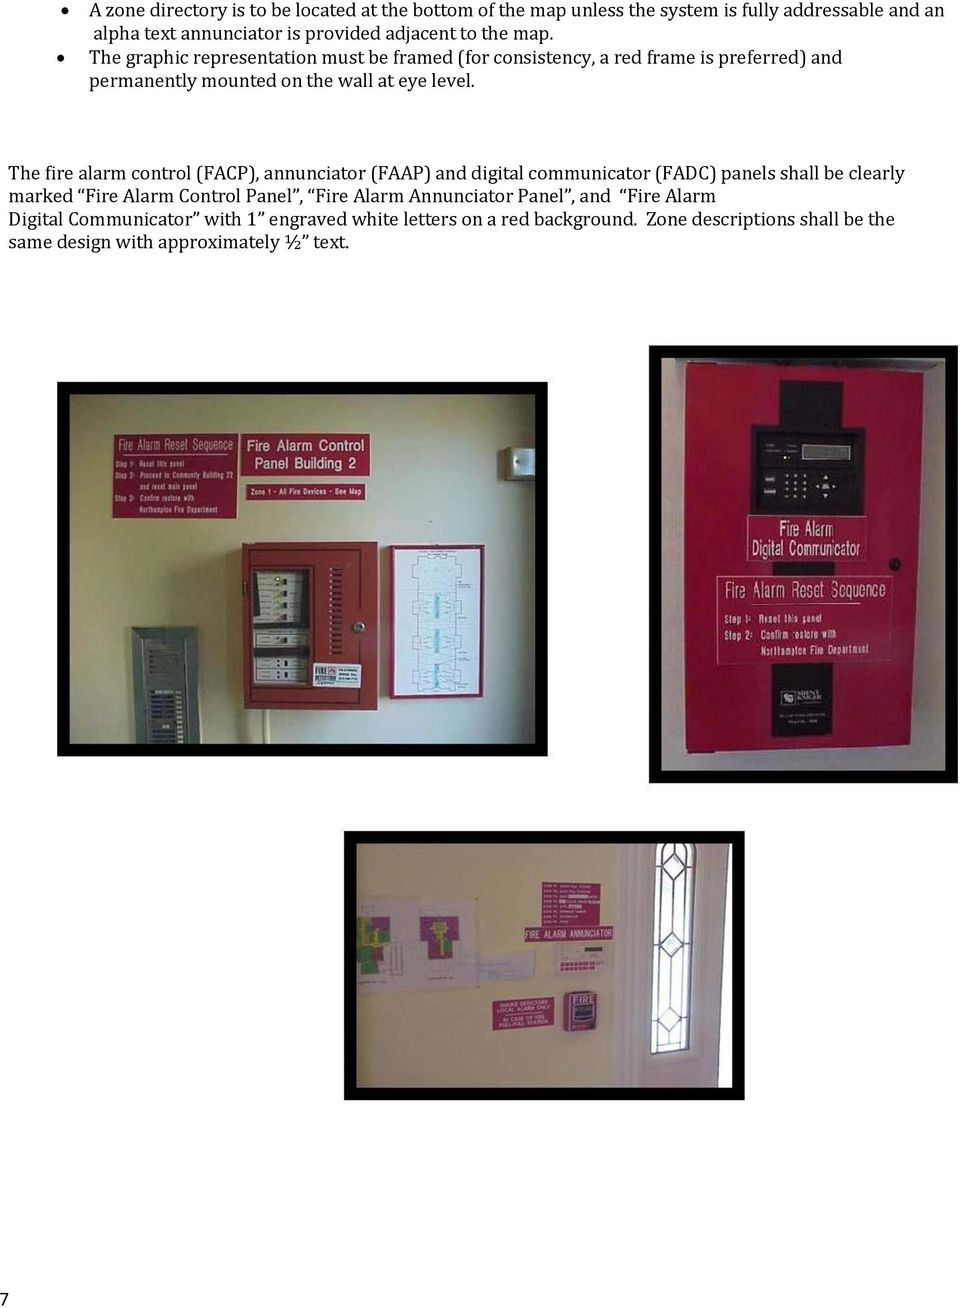 The fire alarm control (FACP), annunciator (FAAP) and digital communicator (FADC) panels shall be clearly marked Fire Alarm Control Panel, Fire Alarm